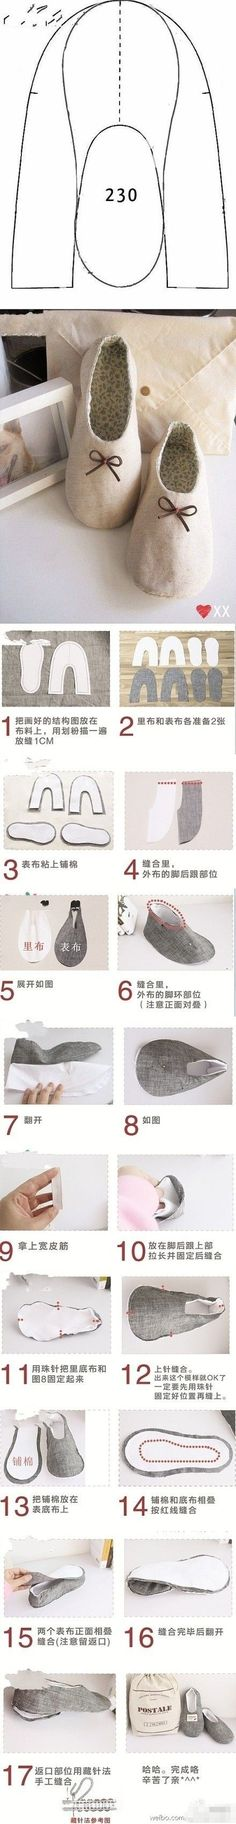 slippers: